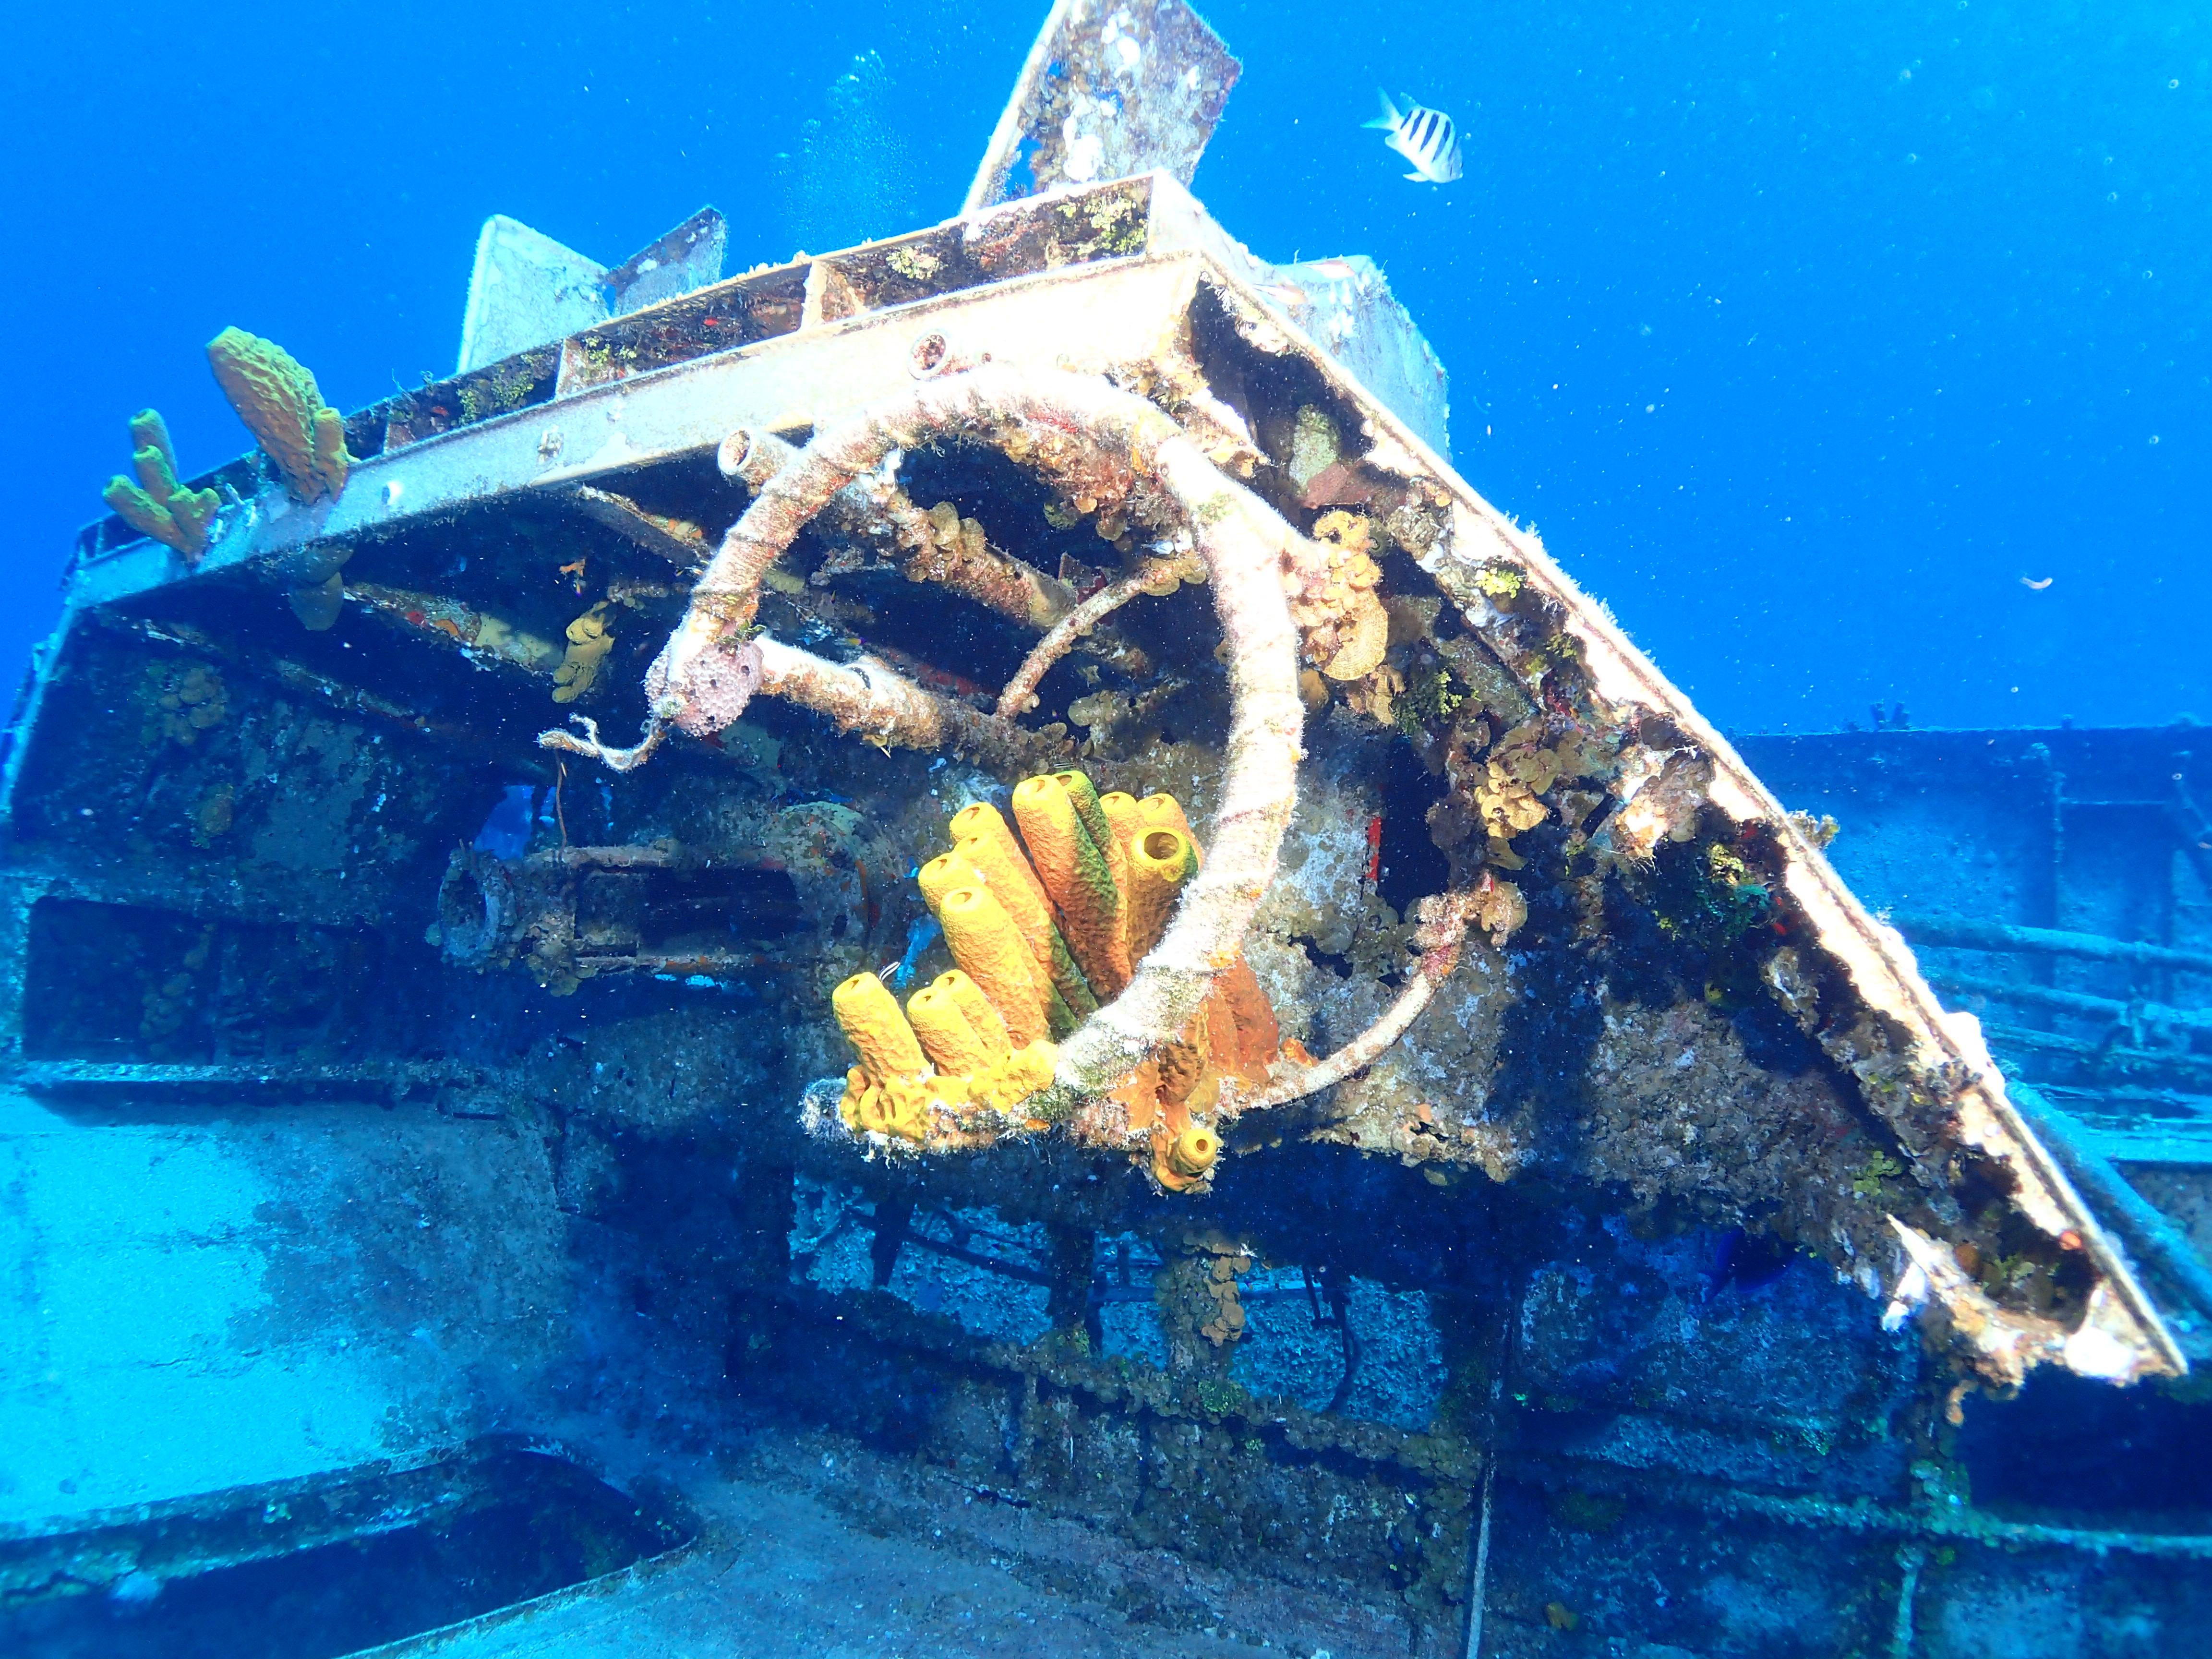 Sponges on the Wreck